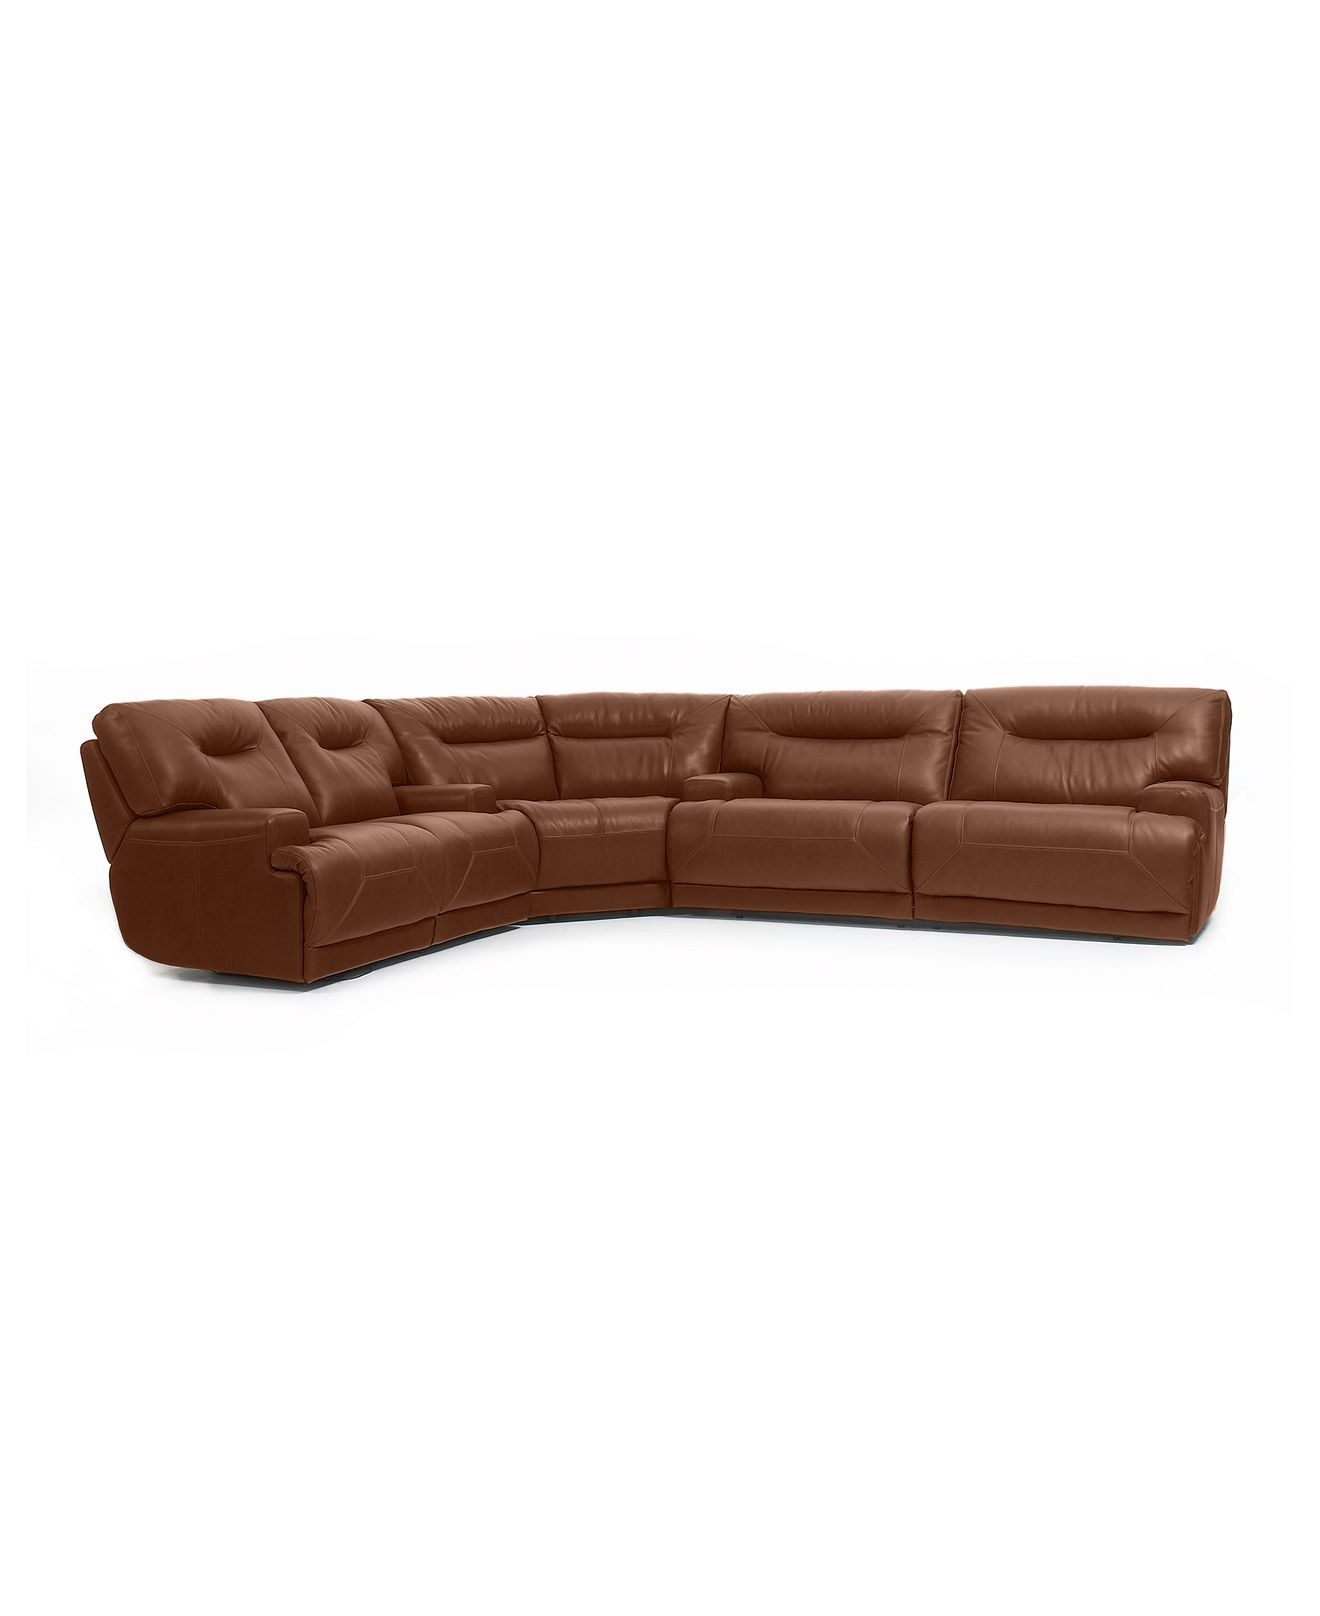 Ricardo Leather Reclining Sectional Sofa 3 Piece Power Recliner